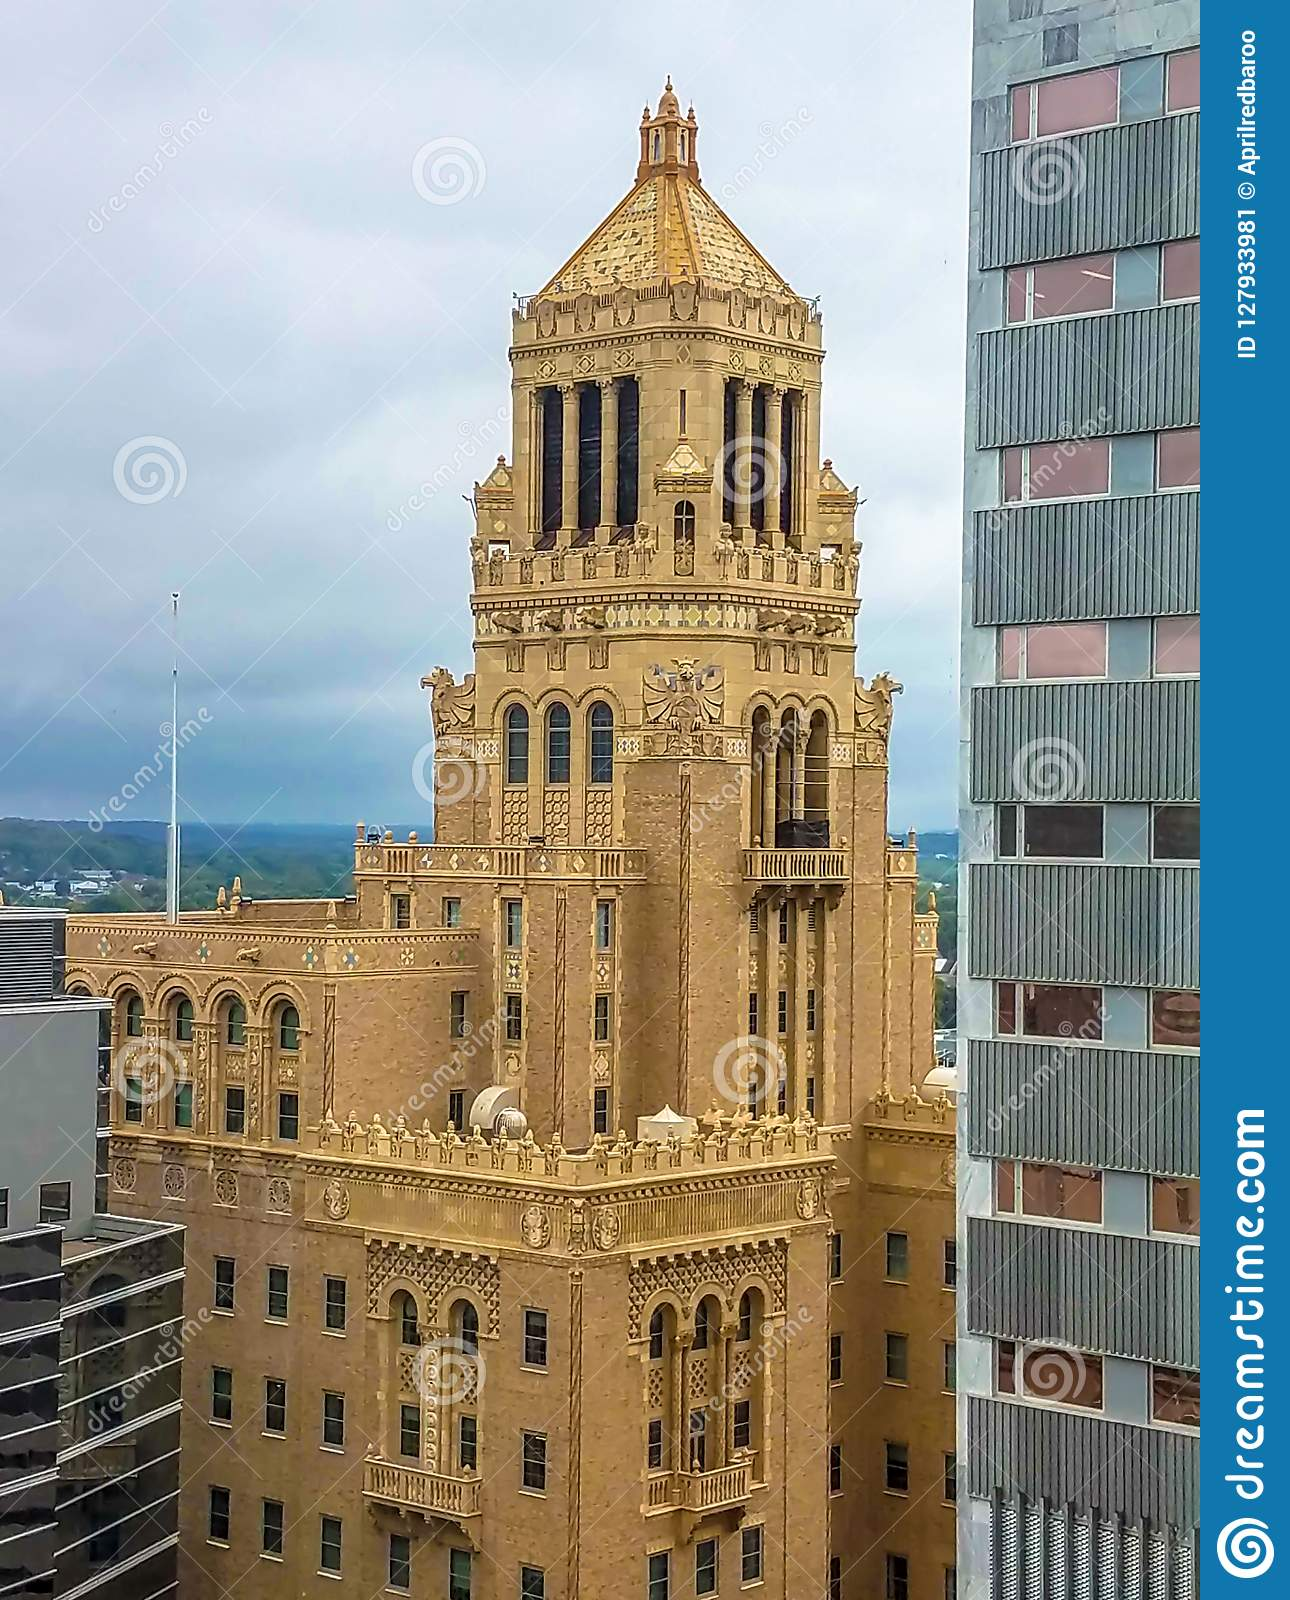 Plummer Building - Mayo Clinic In Rochester, Minnesota Stock Image